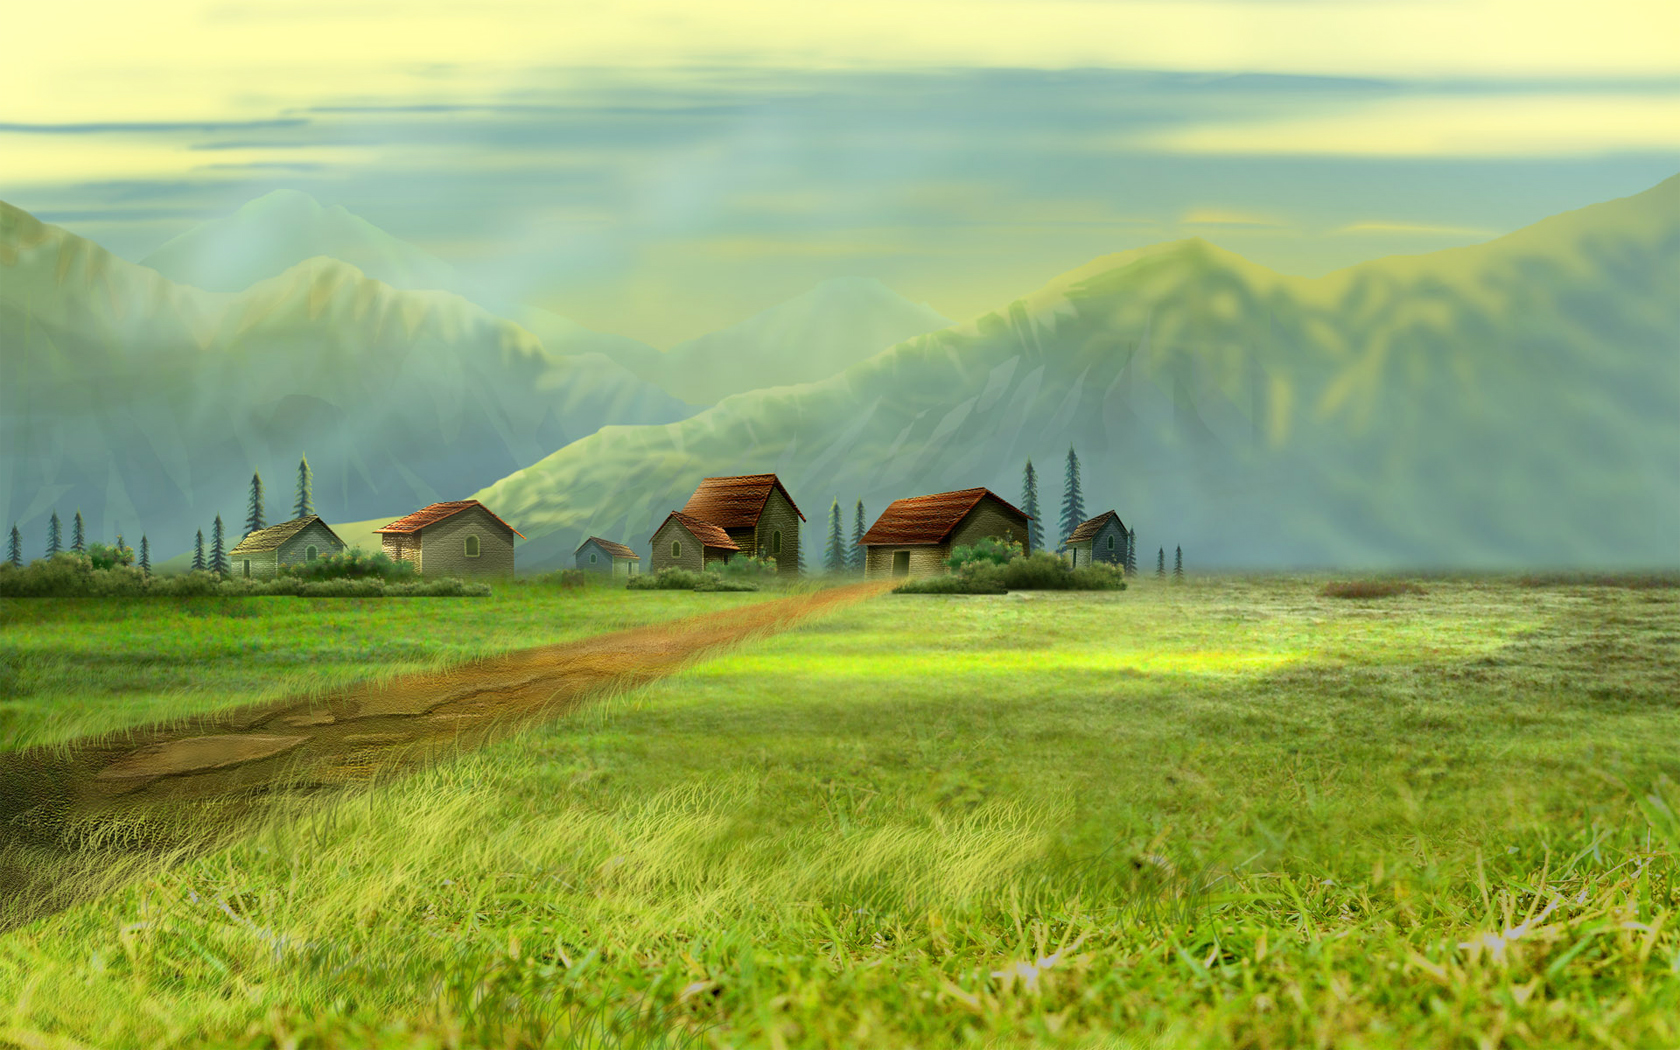 Dream Village Wallpapers HD Wallpapers 1680x1050